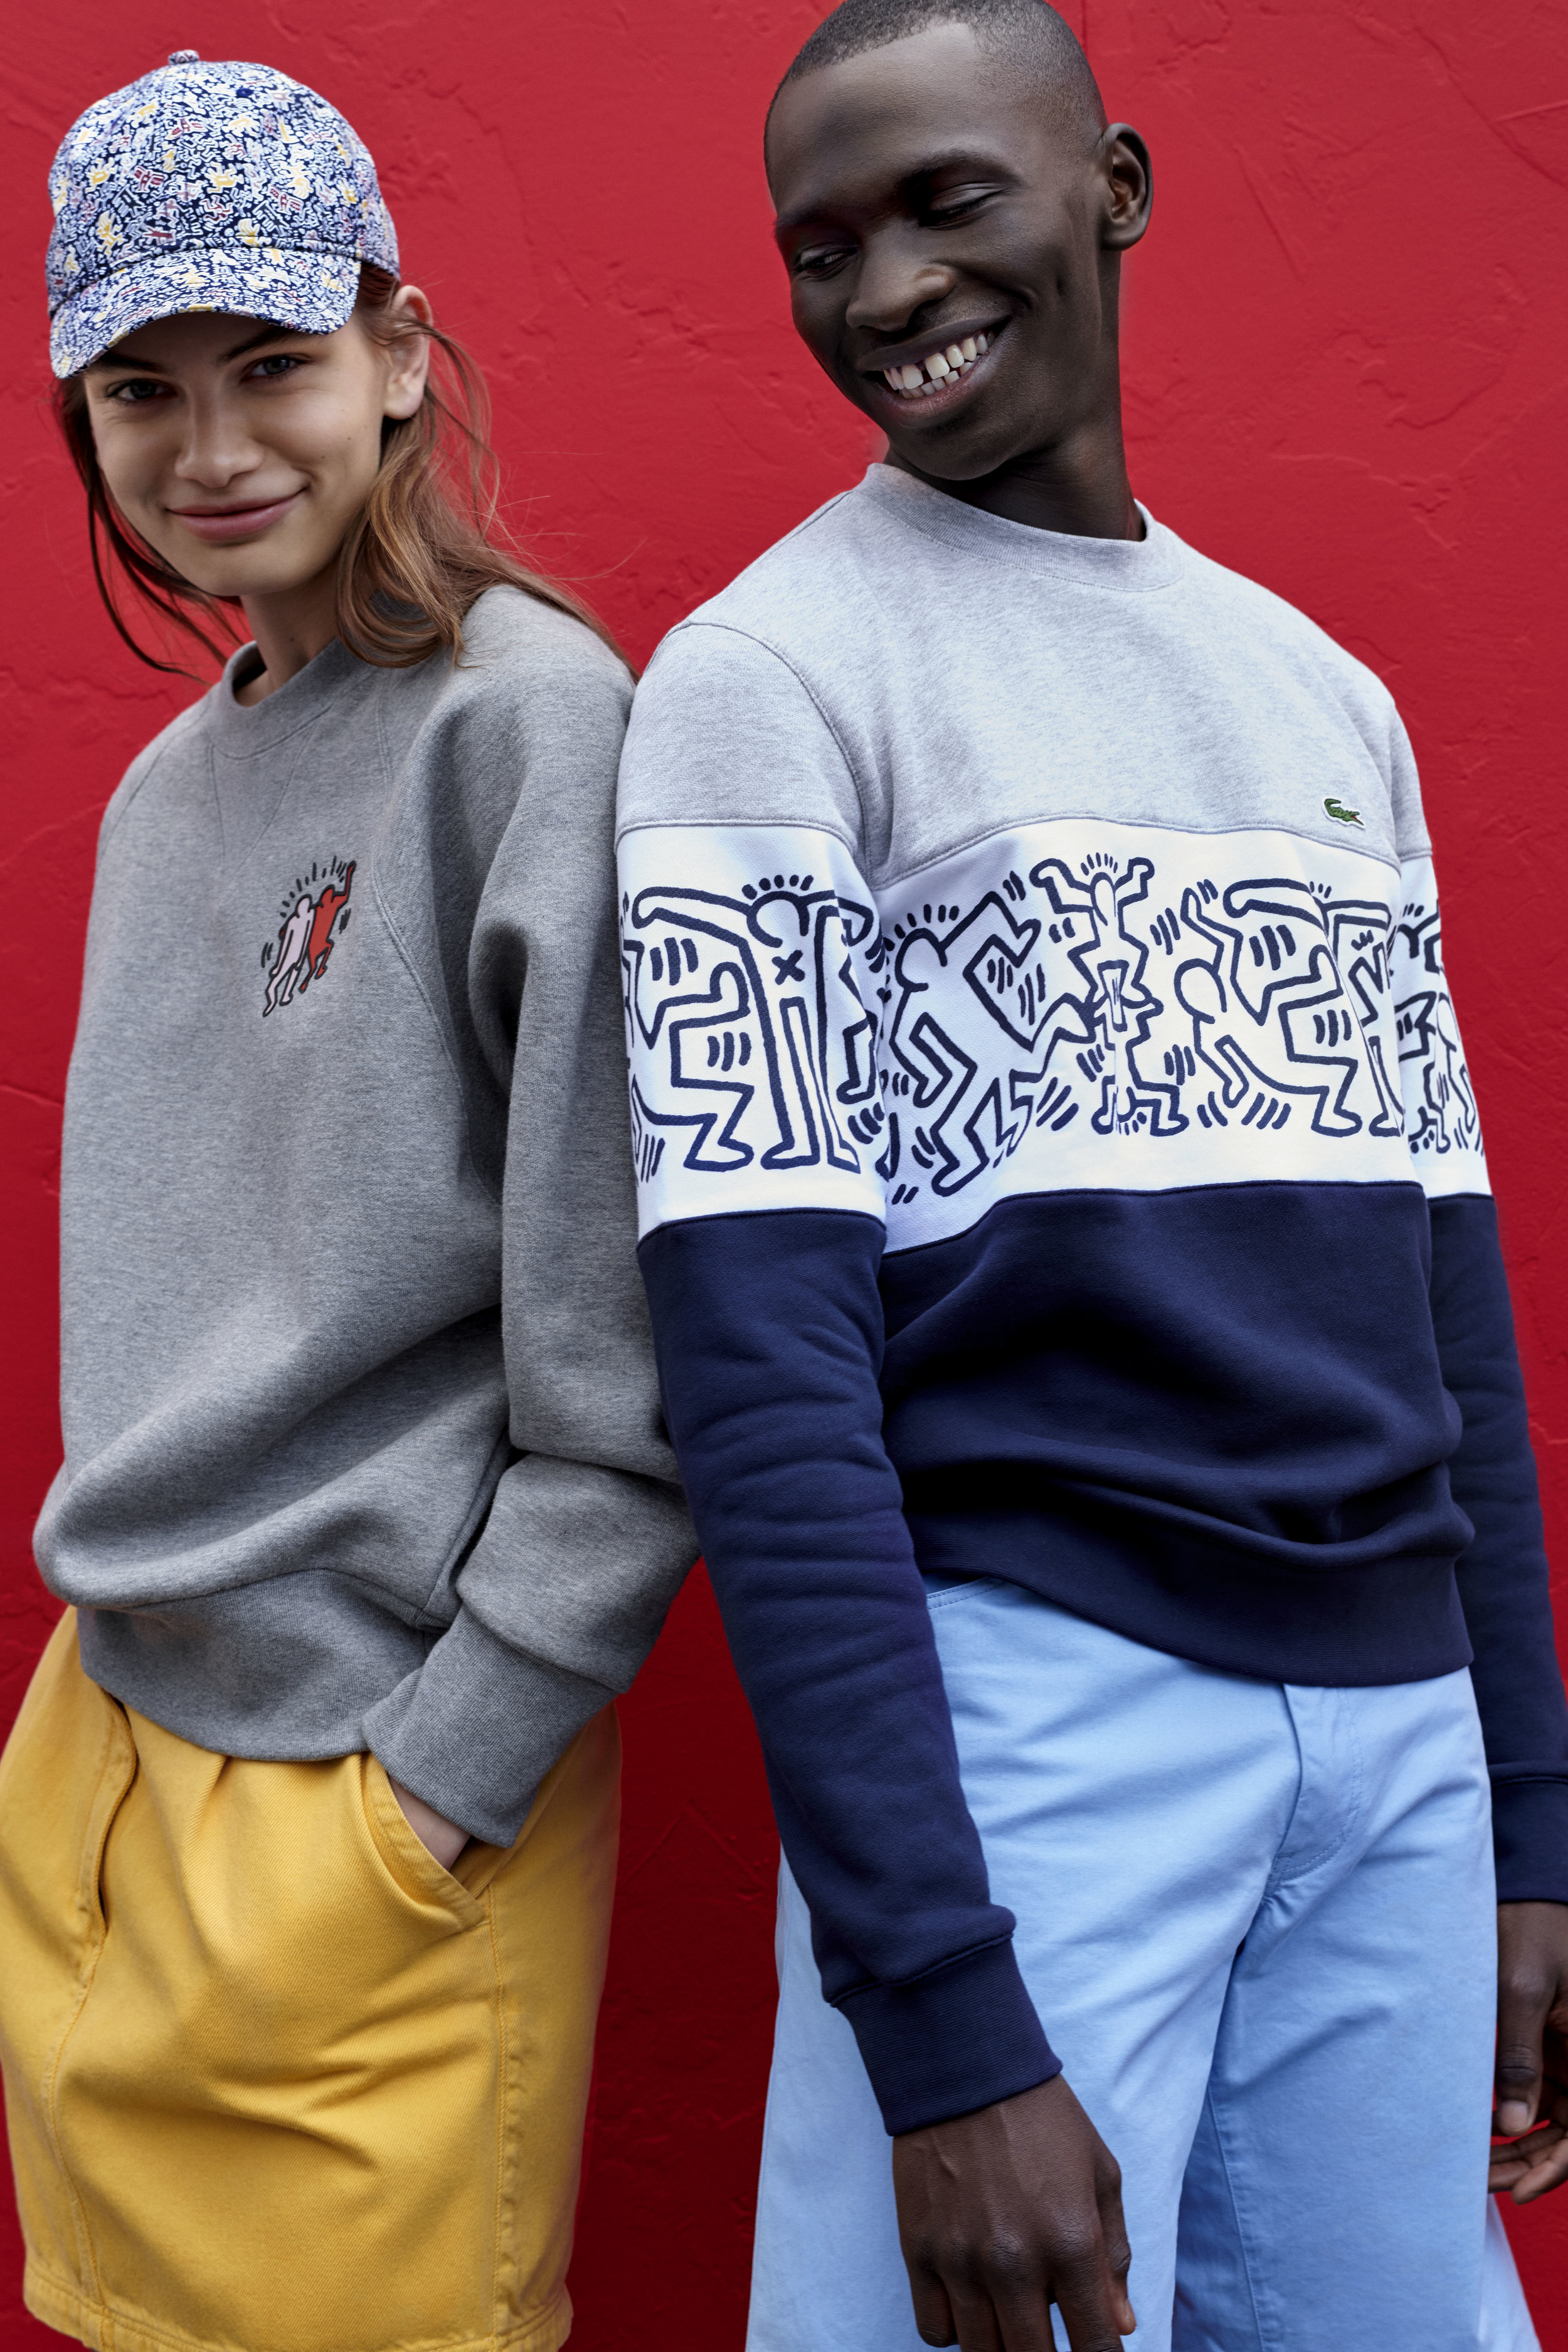 03_LACOSTE_X_KEITH_HARING.jpg